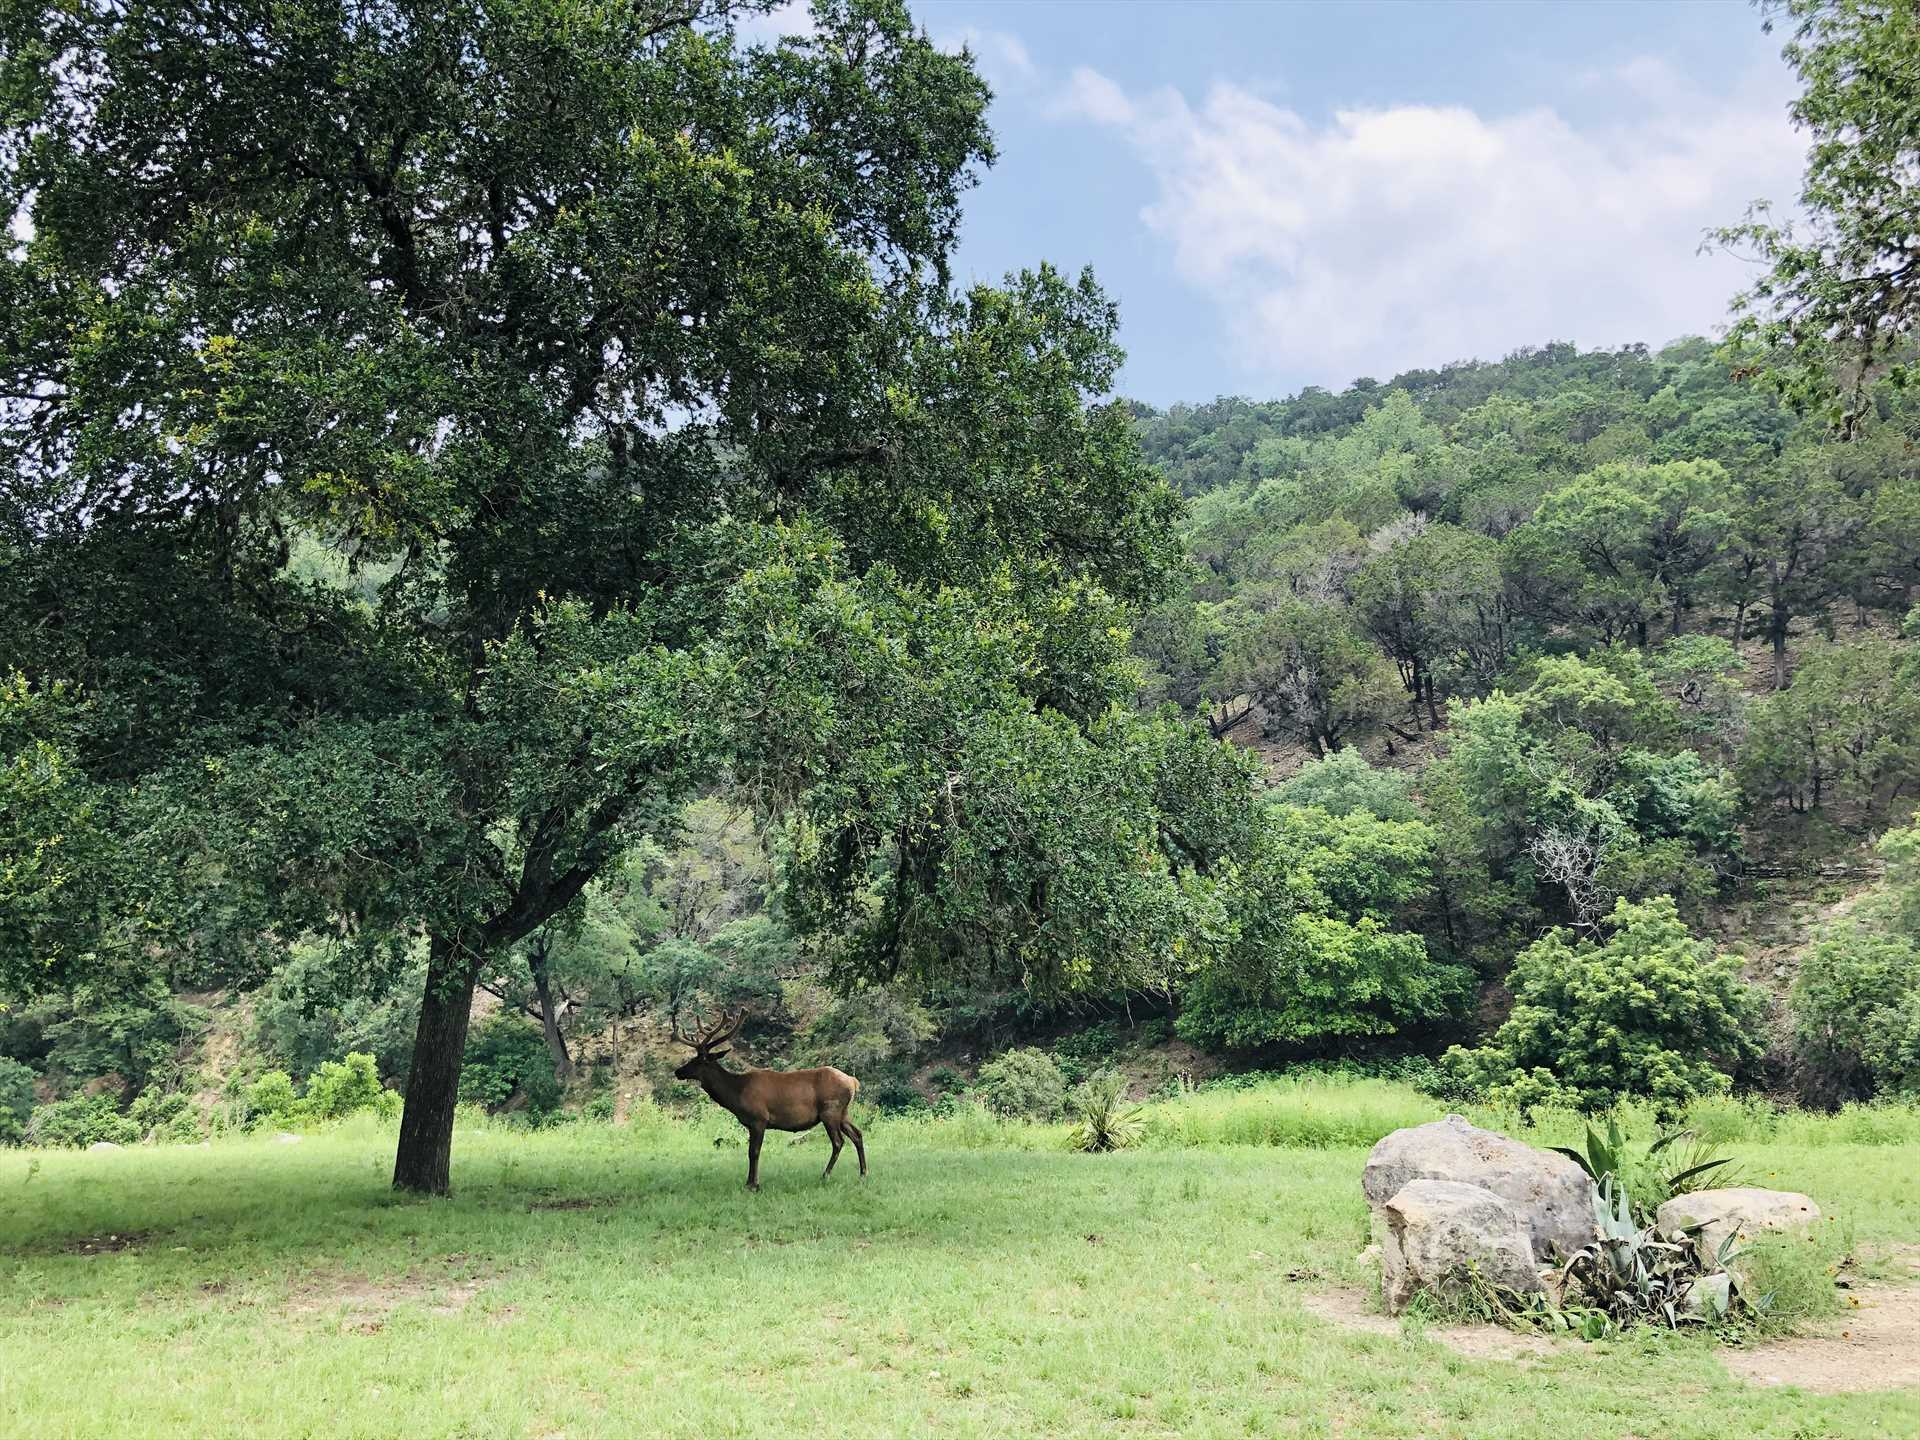 Wildlife, wide open skies, forests and mountains as far as the eye can see. Join our happy guests who love it here!